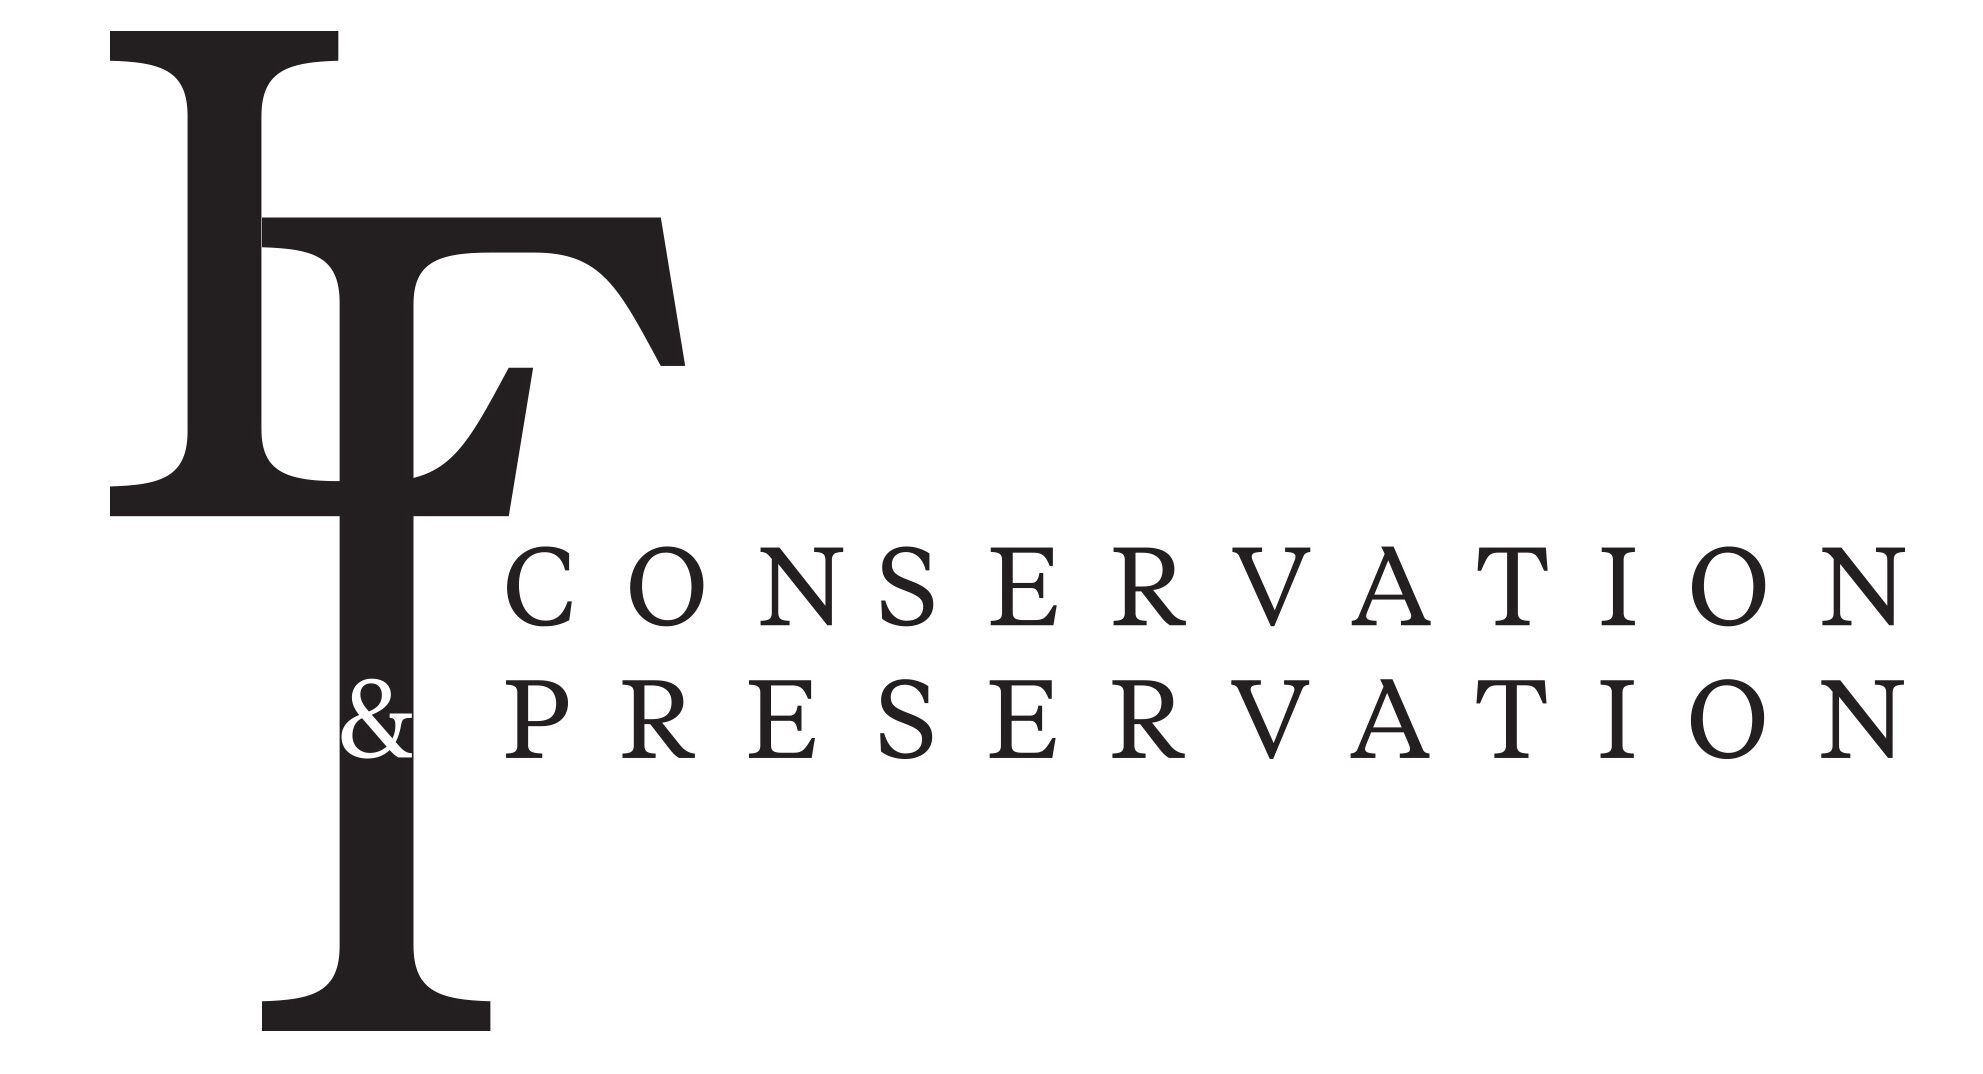 LF Conservation and Preservation